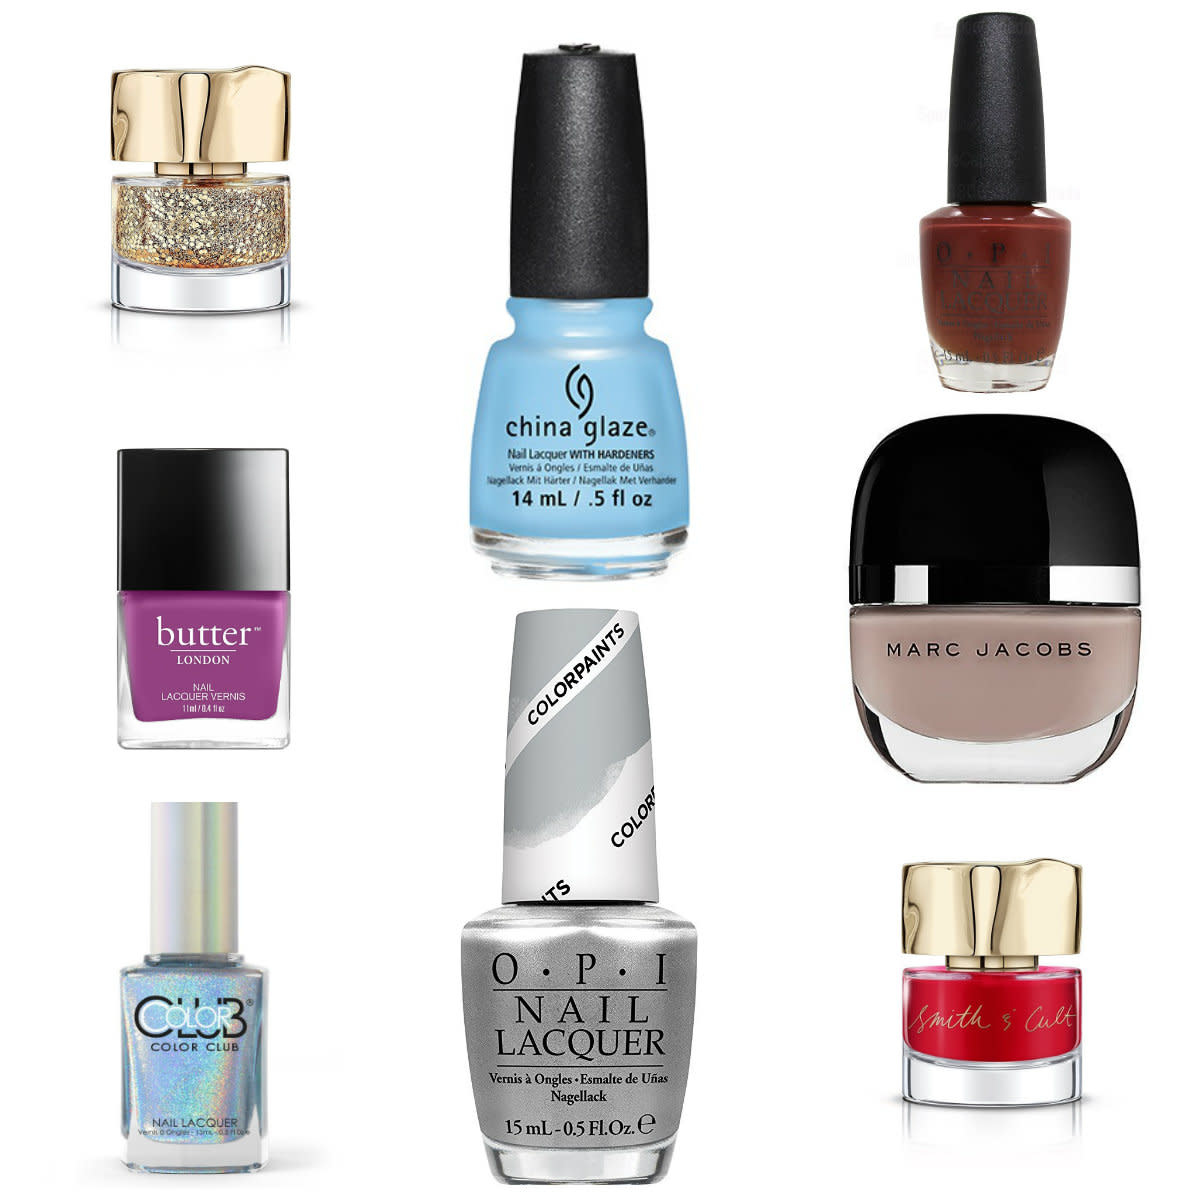 Top 10 Nail Polish Colors for Winter